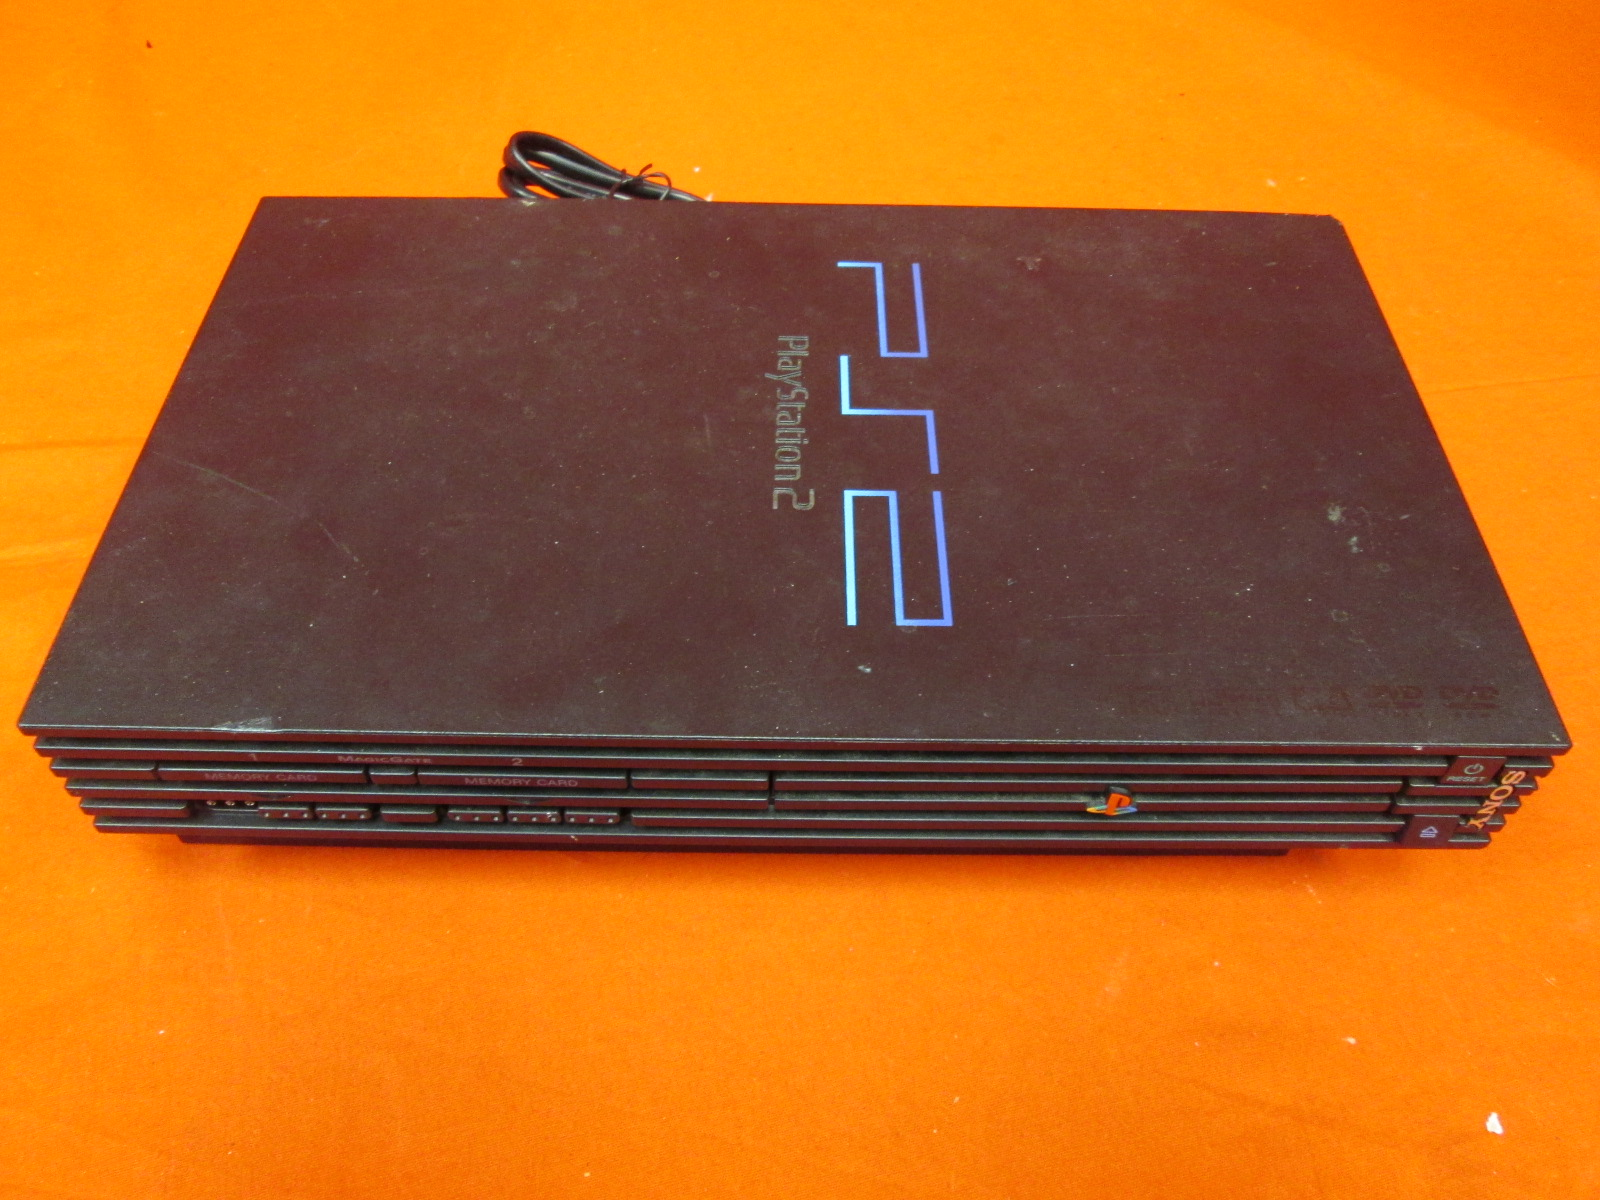 Broken PlayStation 2 Console Black